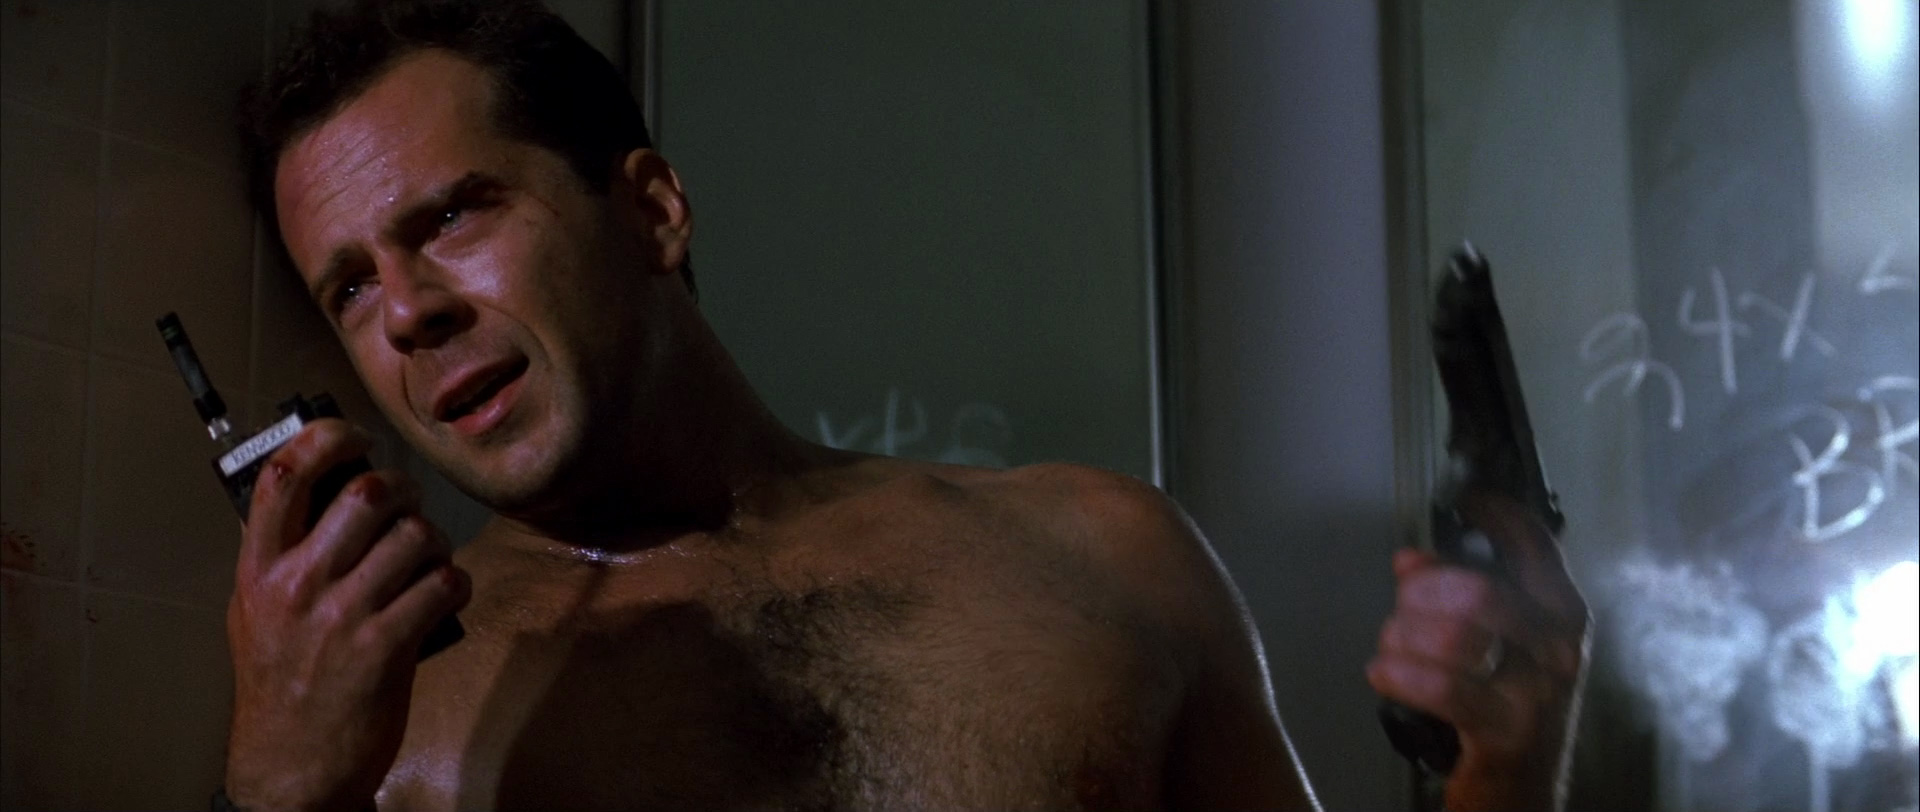 Making fists with your toes: Towards a feminist analysis of Die Hard